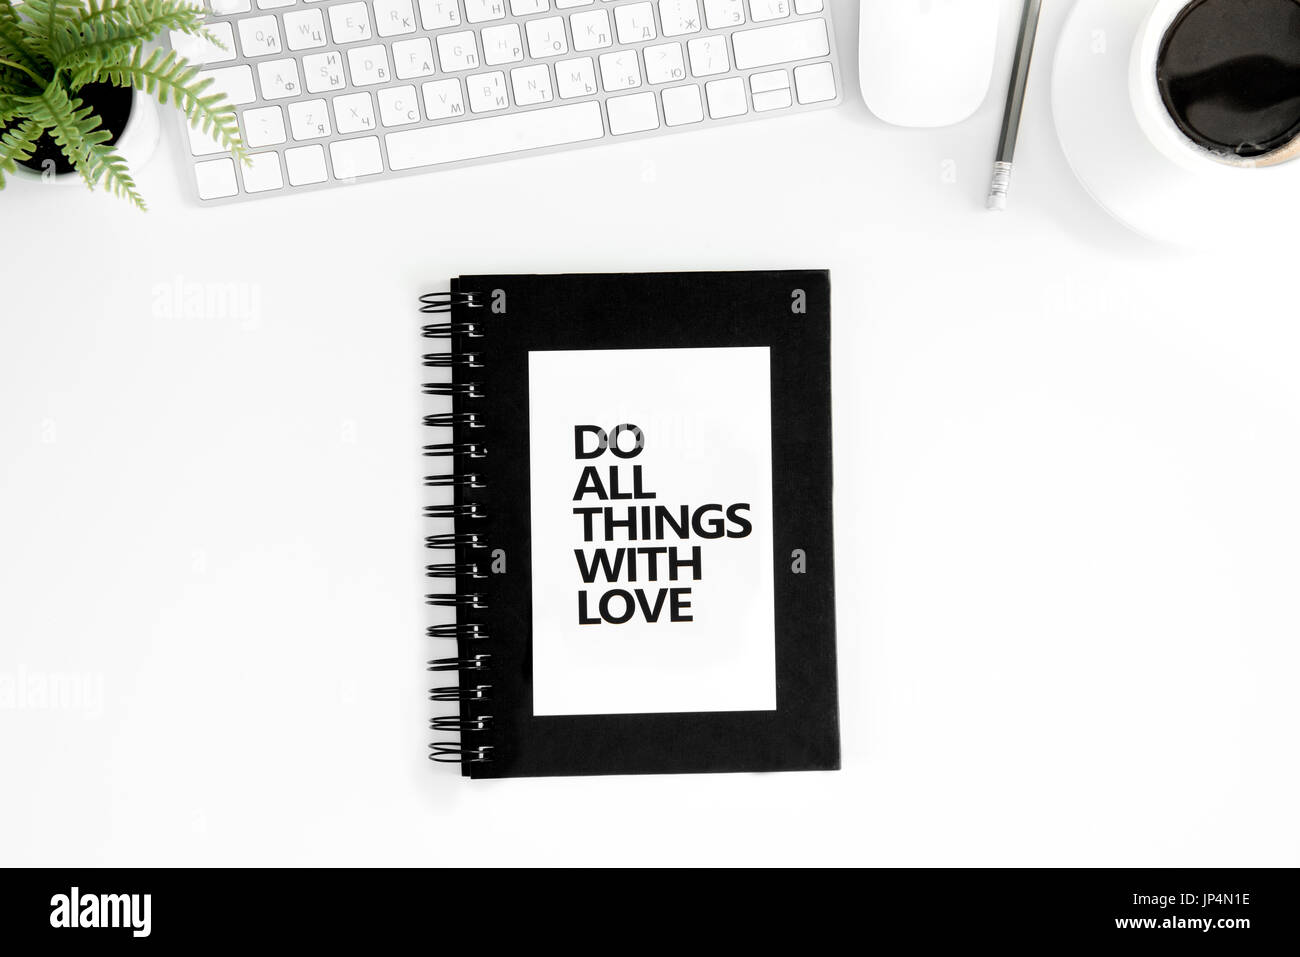 Top view of do all things with love motivational quote, computer mouse and keyboard isolated on white - Stock Image